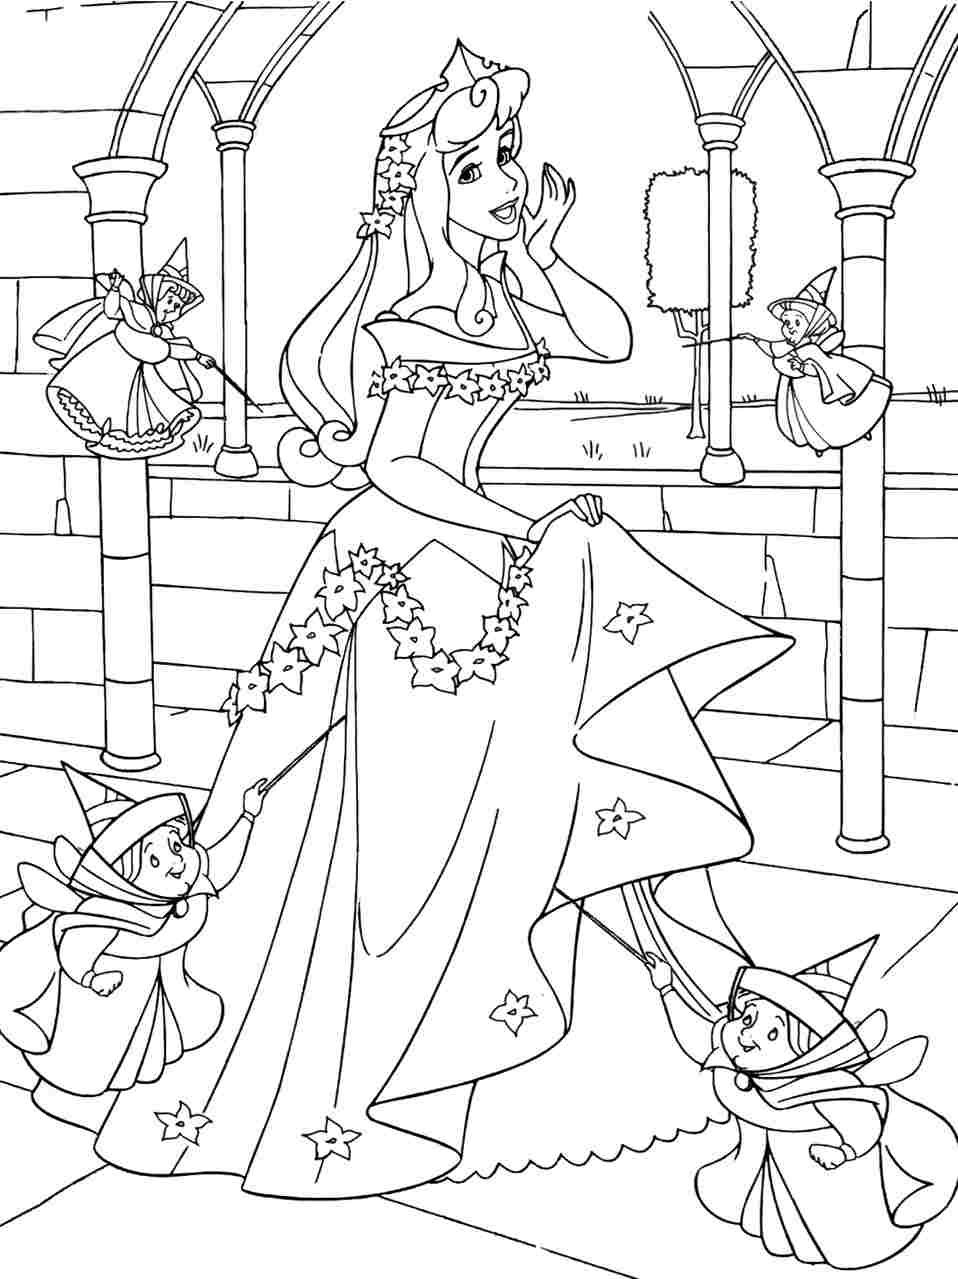 sleeping beauty coloring pages | Print Disney Princess Sleeping ...